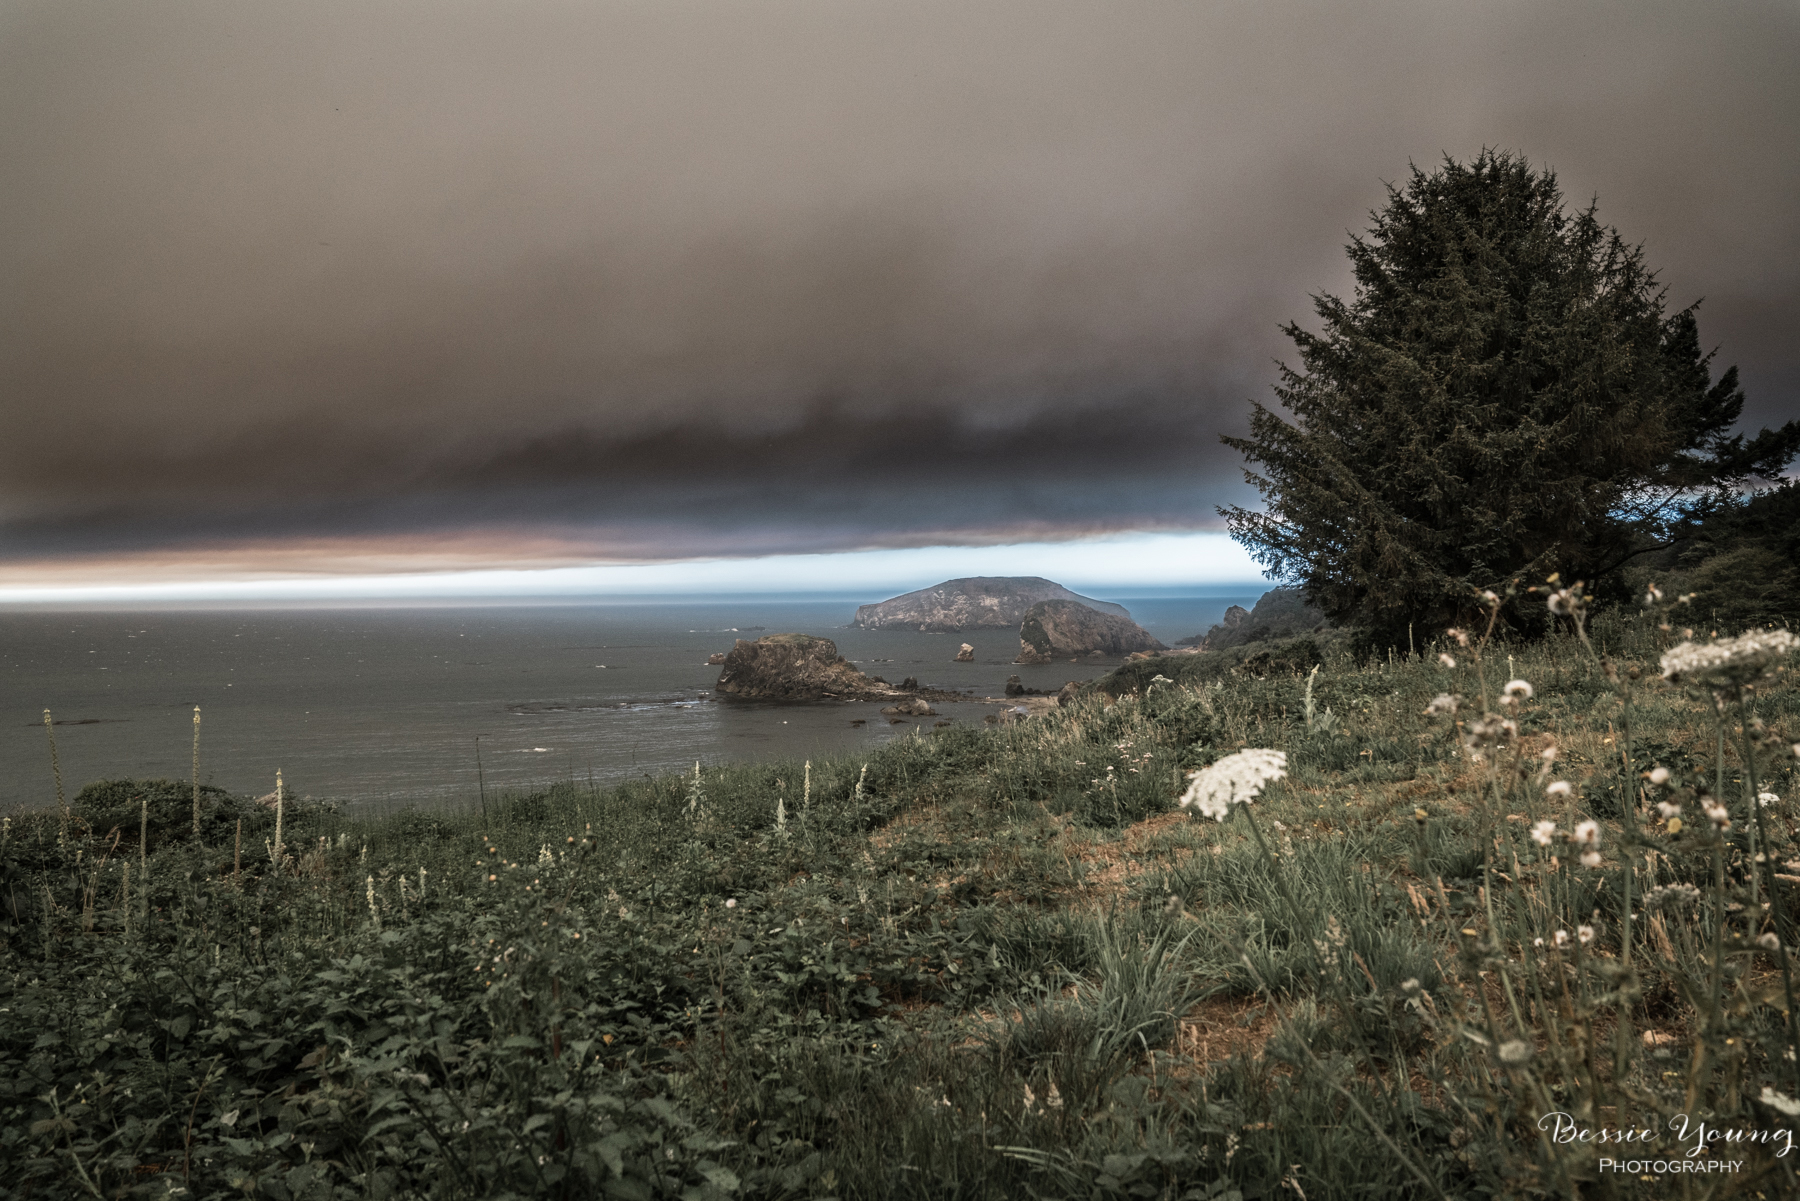 Chetco Bar Fire Brookings Oregon 2017 - Bessie Young Photography-2.jpg